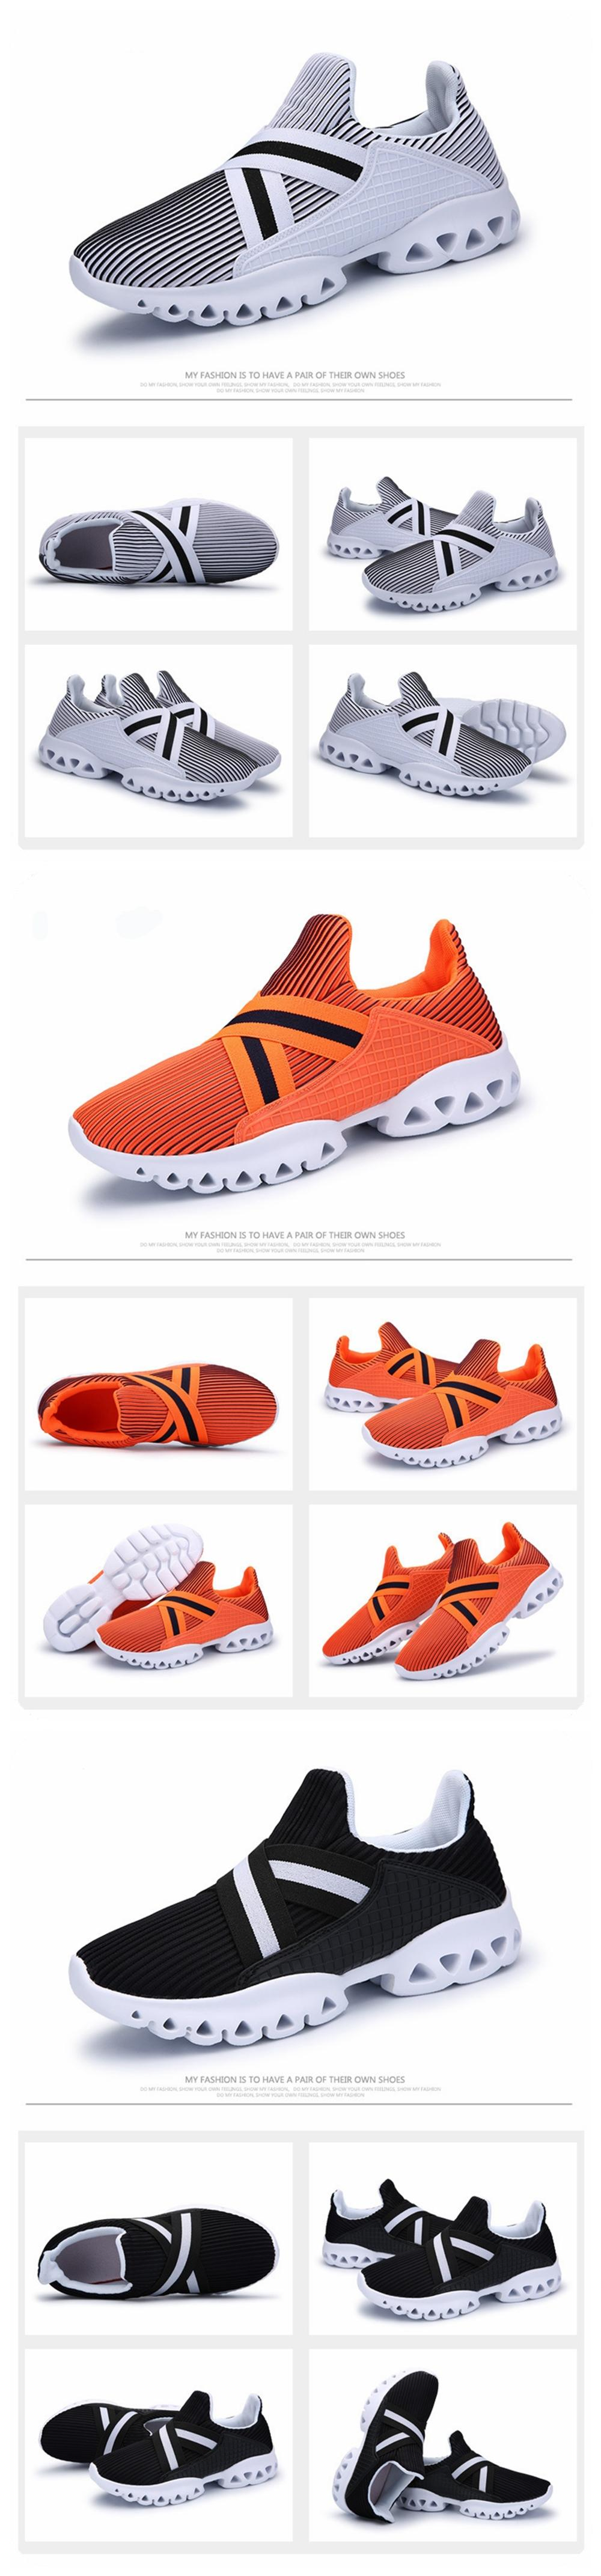 Latest design Men's shoes running shoes , Fashion sports shoes for men